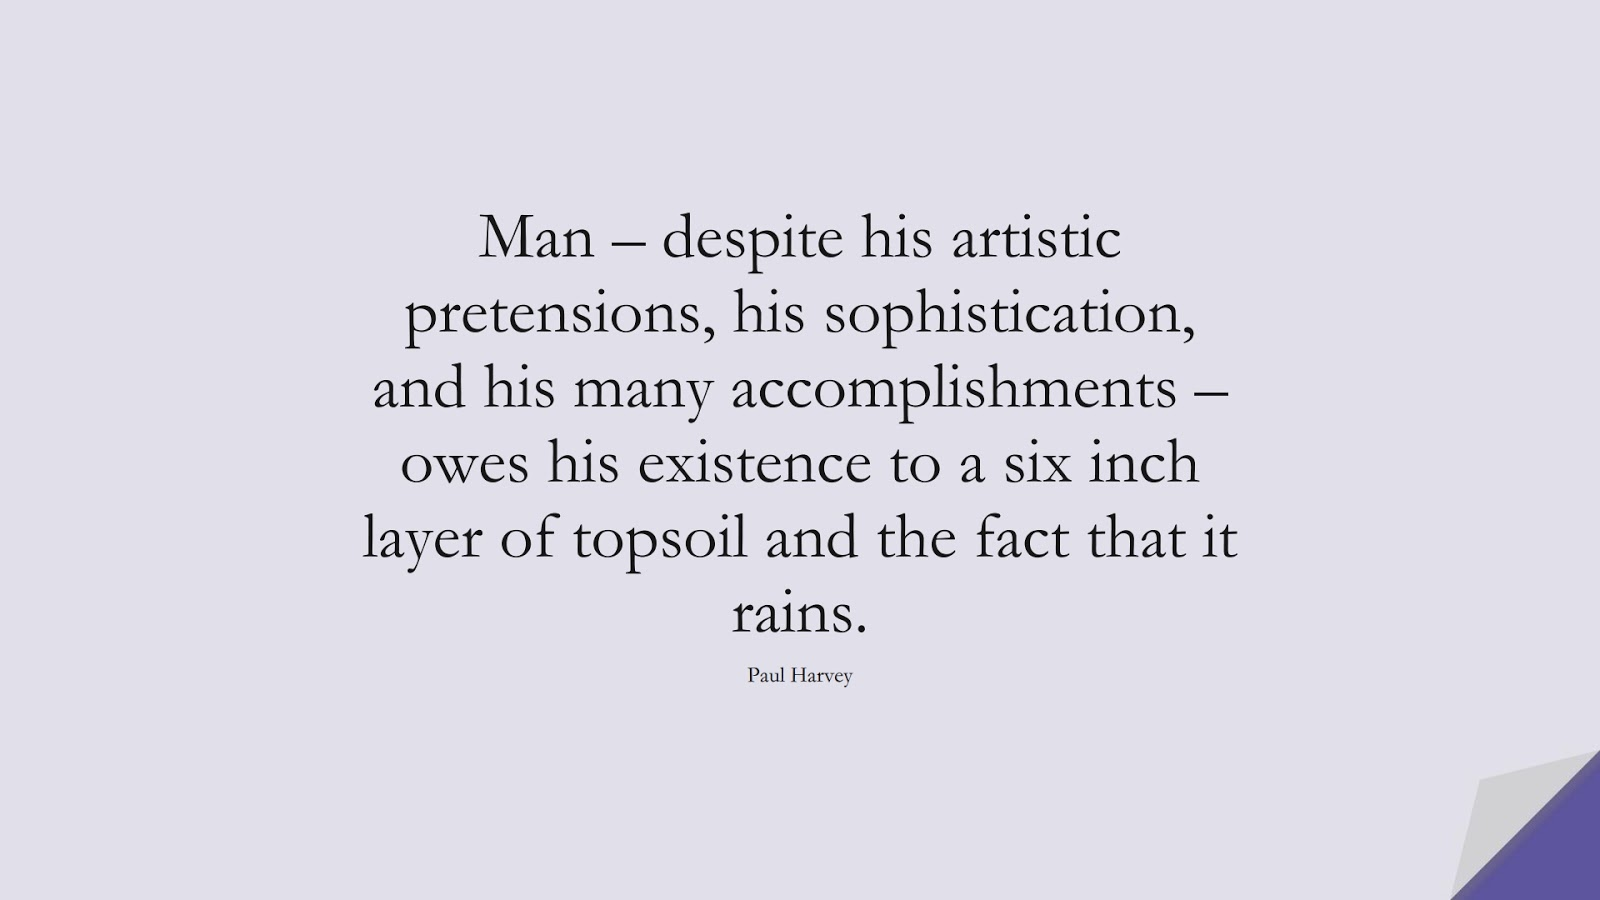 Man – despite his artistic pretensions, his sophistication, and his many accomplishments – owes his existence to a six inch layer of topsoil and the fact that it rains. (Paul Harvey);  #HumanityQuotes